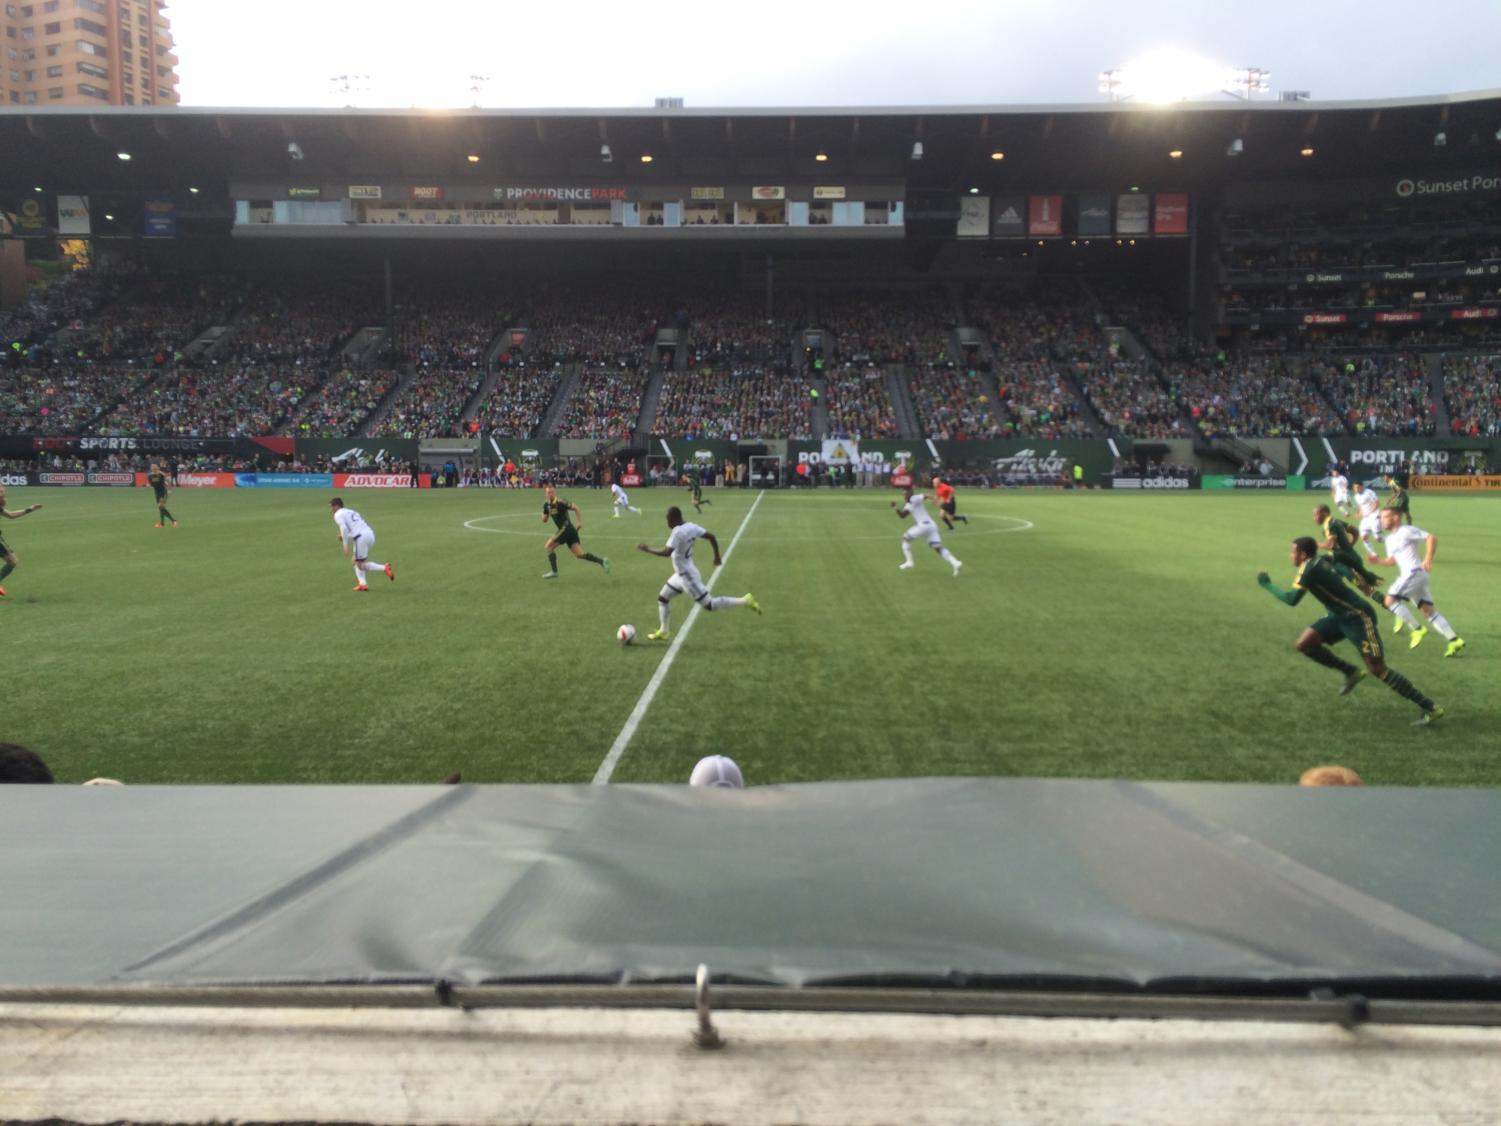 Timbers play at Providence Park before renovations.